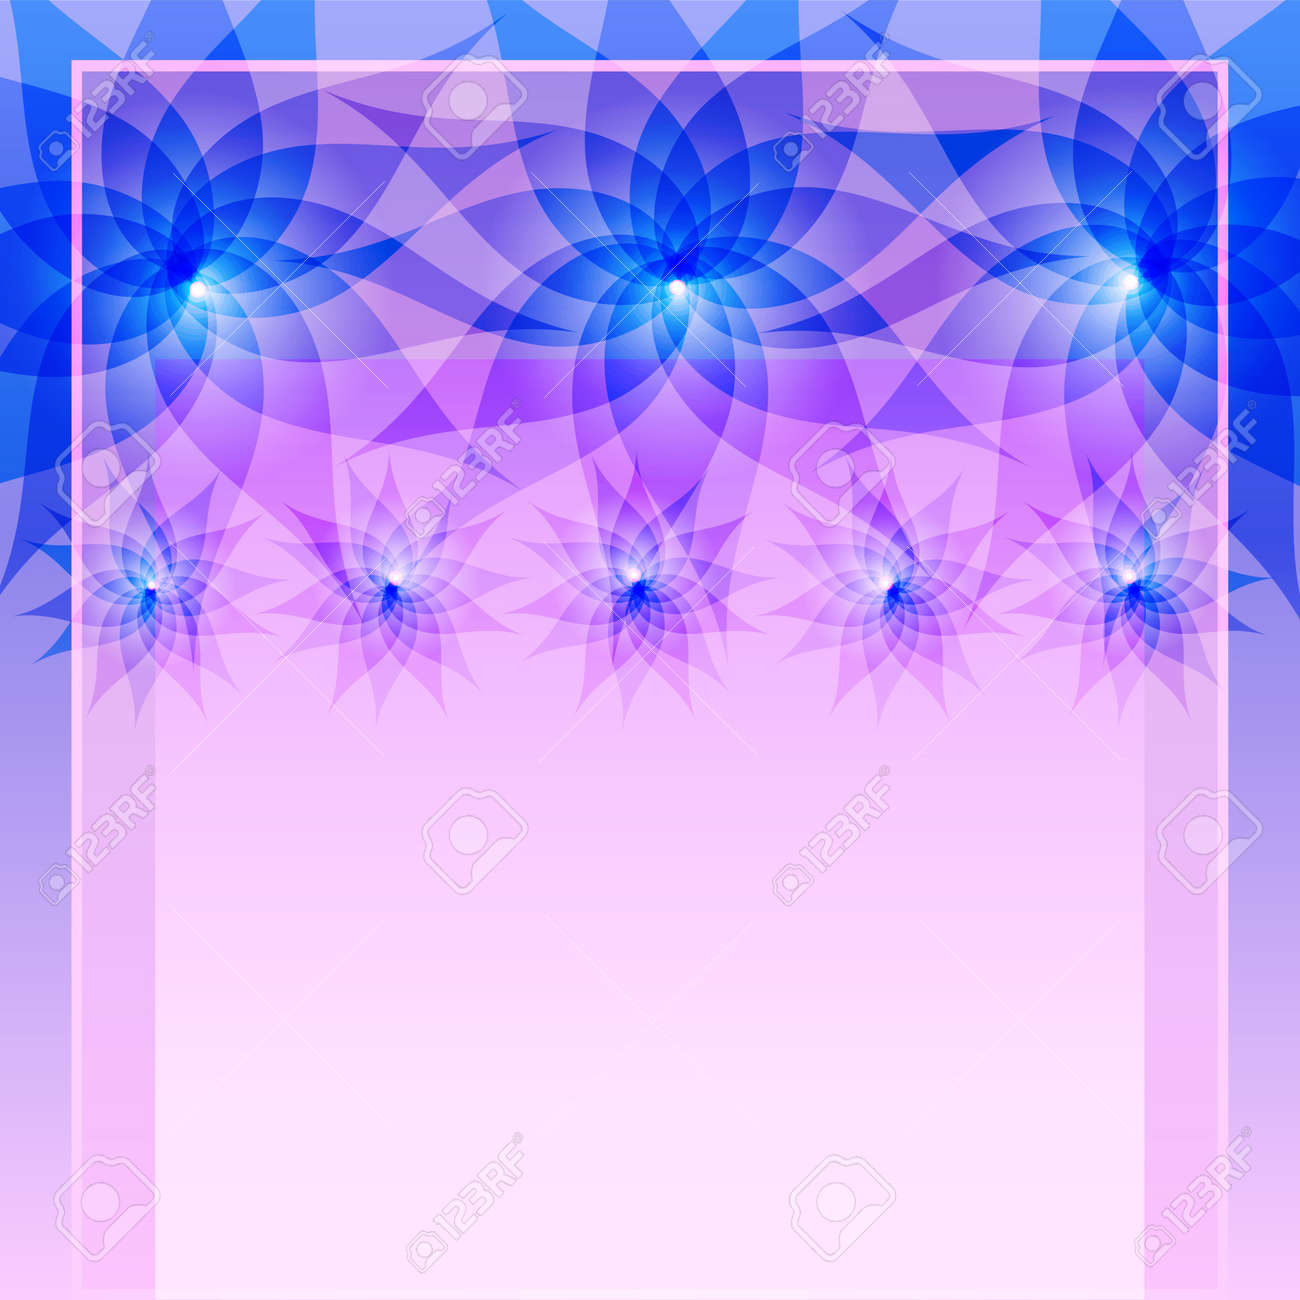 abstract floral blue  purple background with flowers lilies, invitation samples